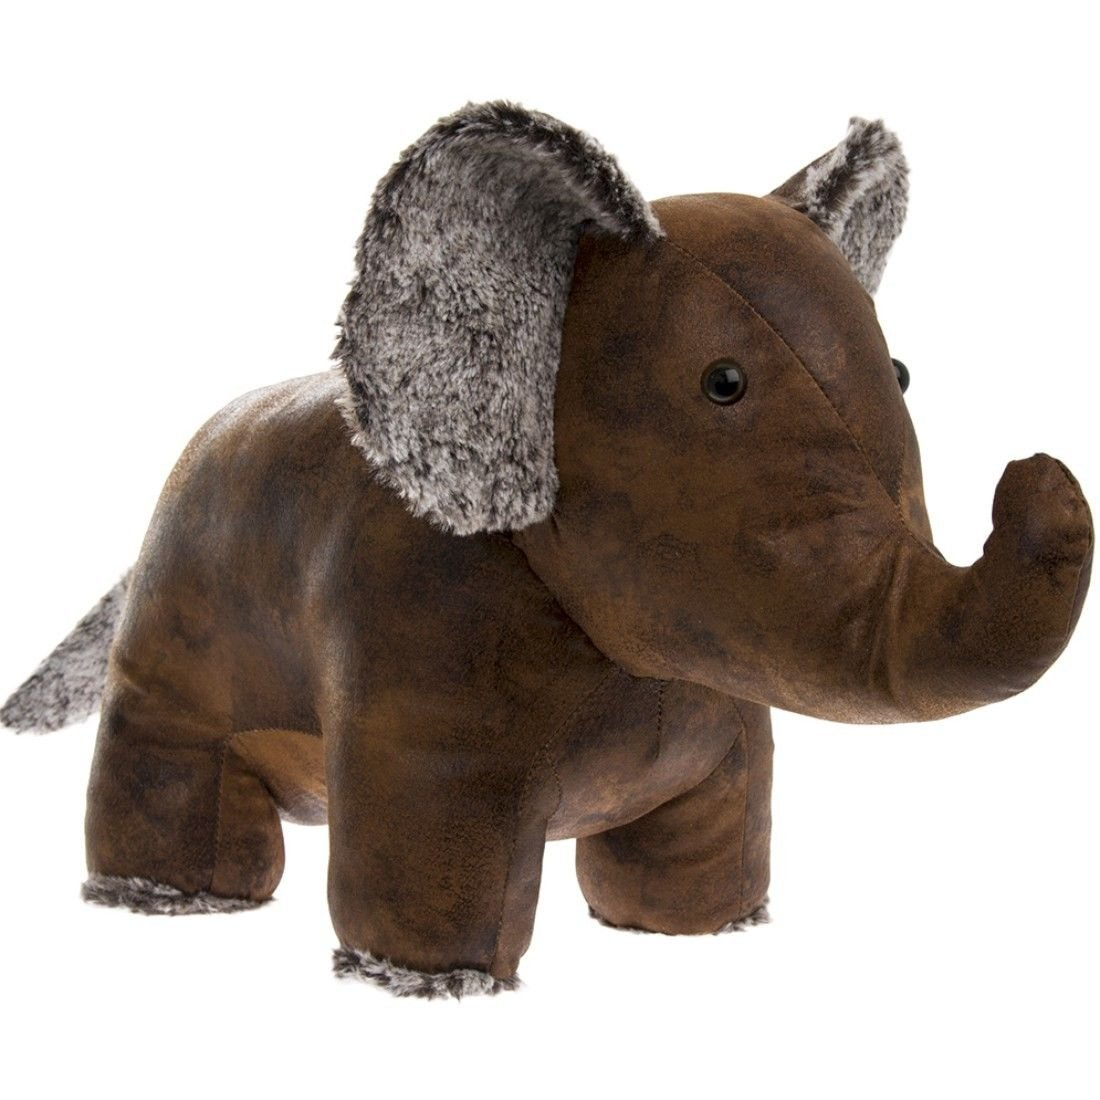 Faux Leather Elephant Doorstop